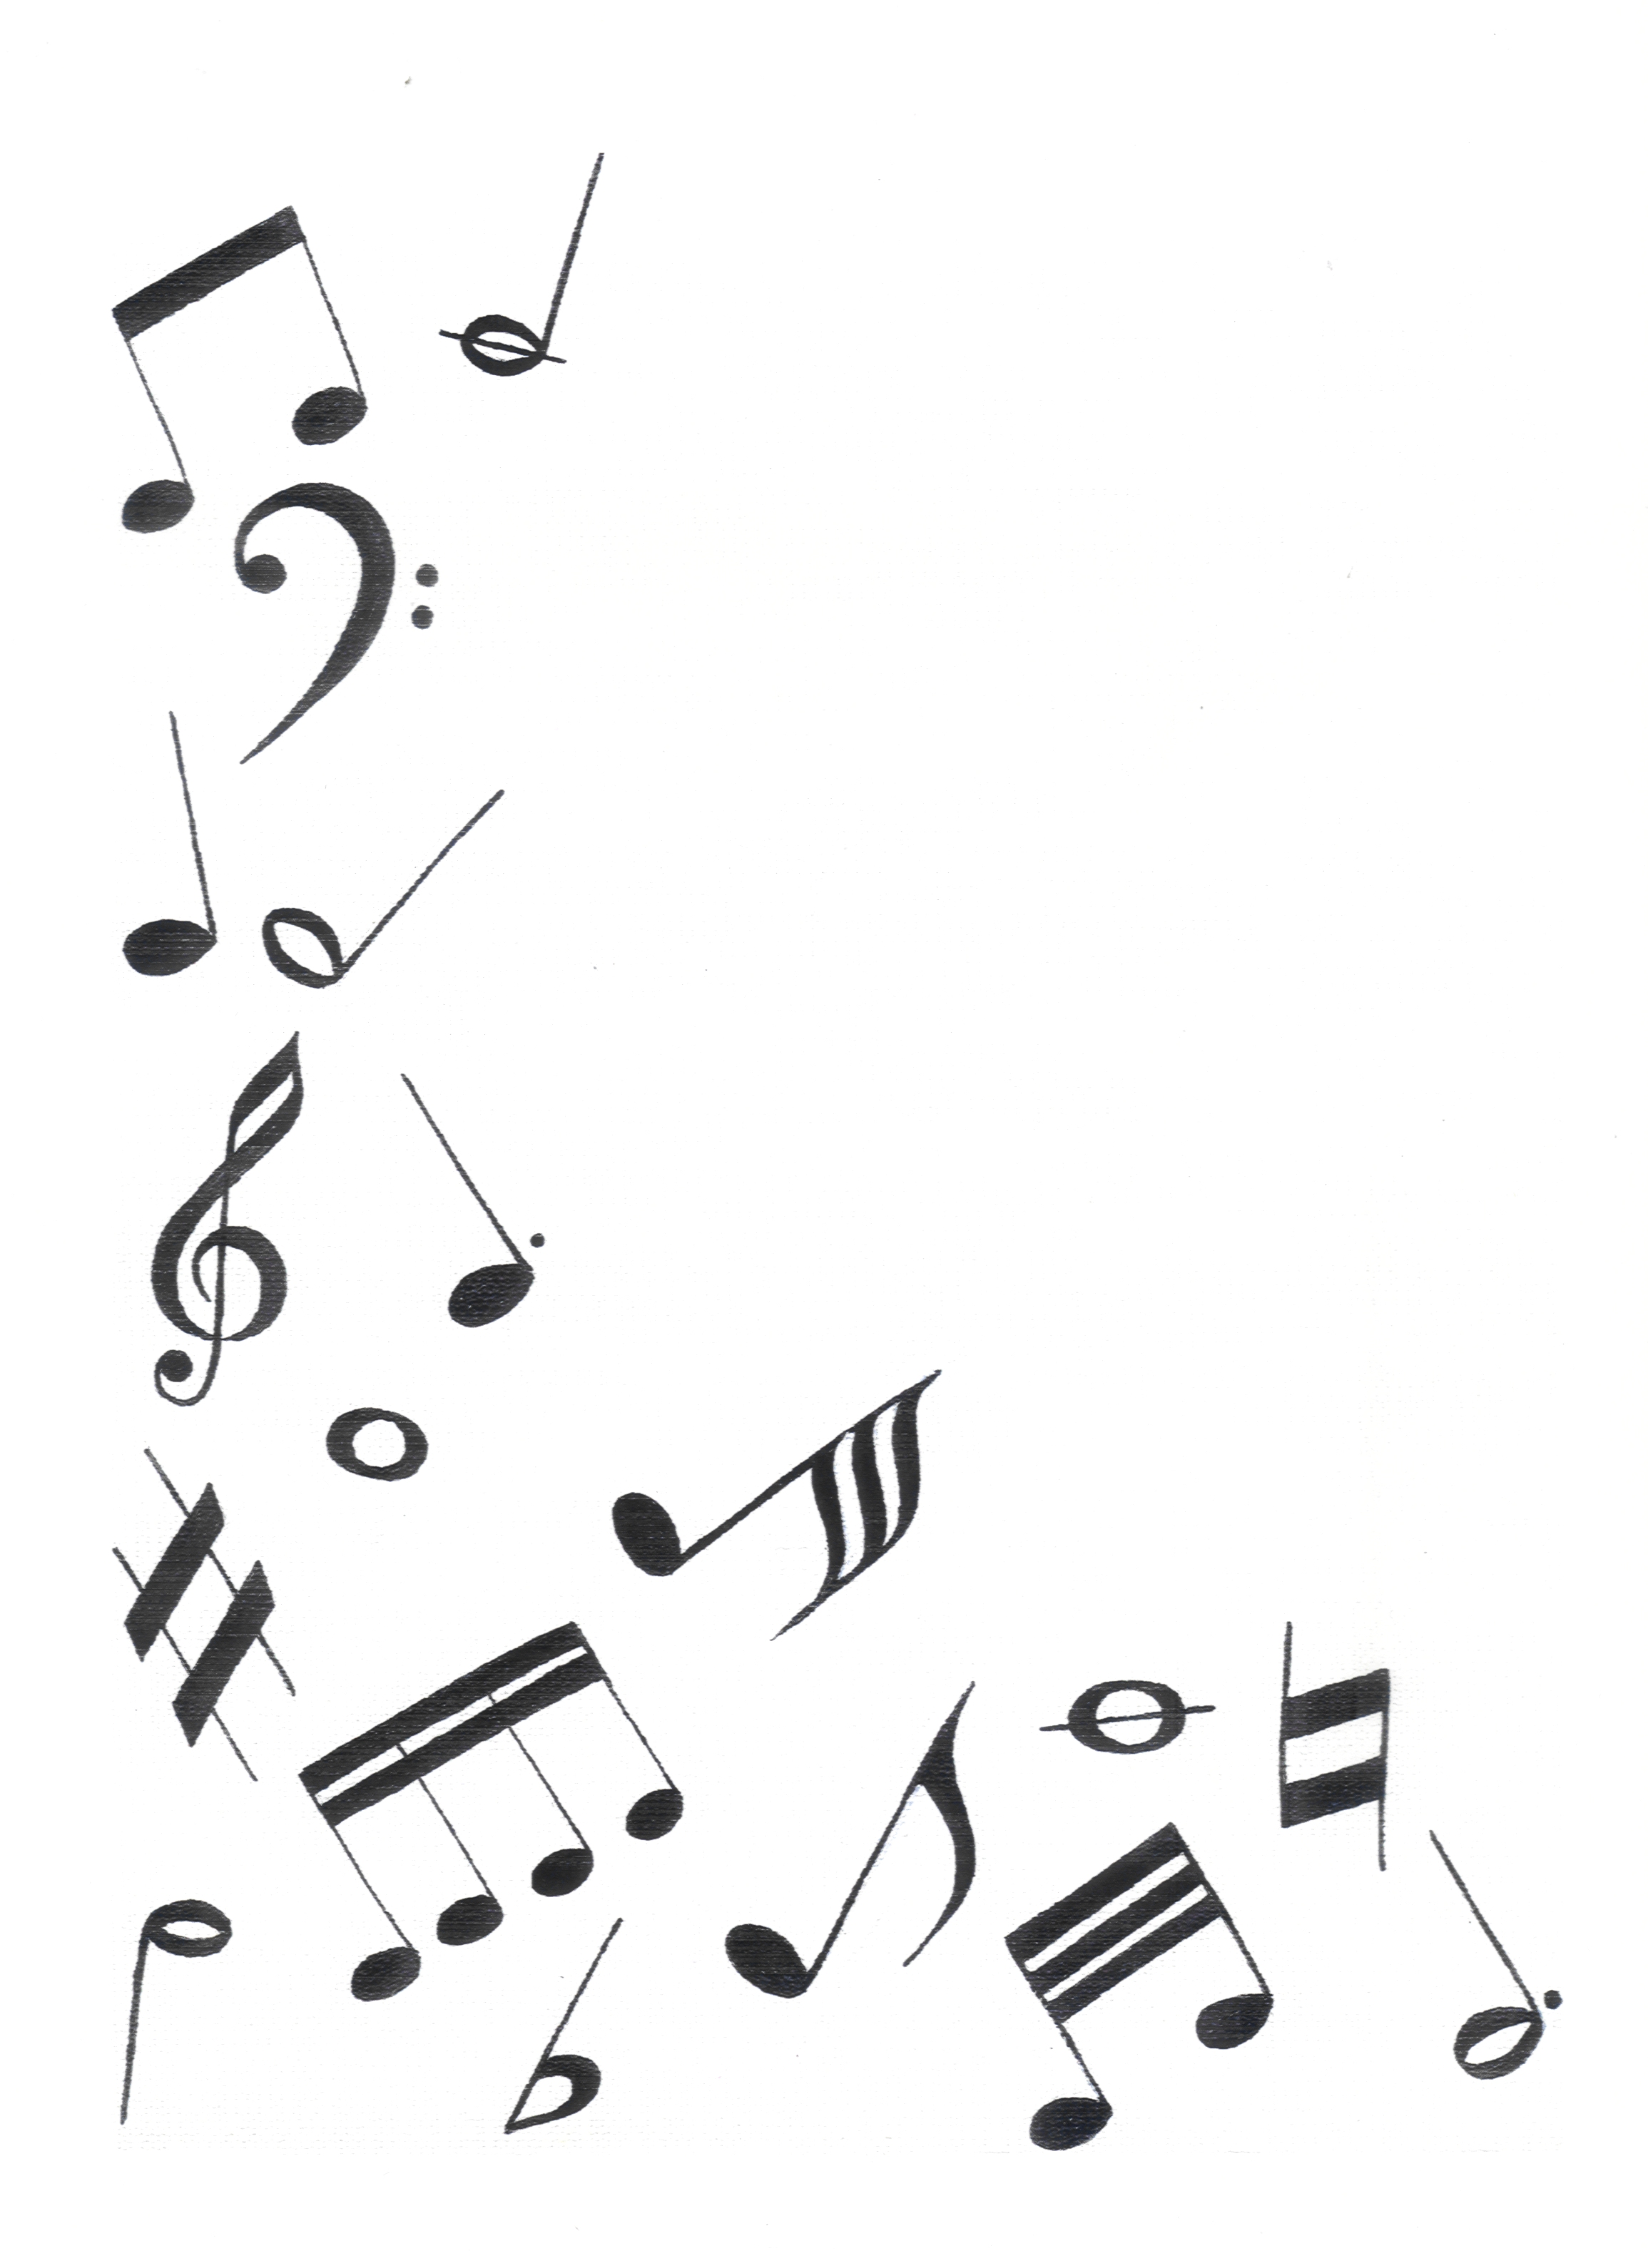 Drawn music notes simple 1 « notes music KPWms